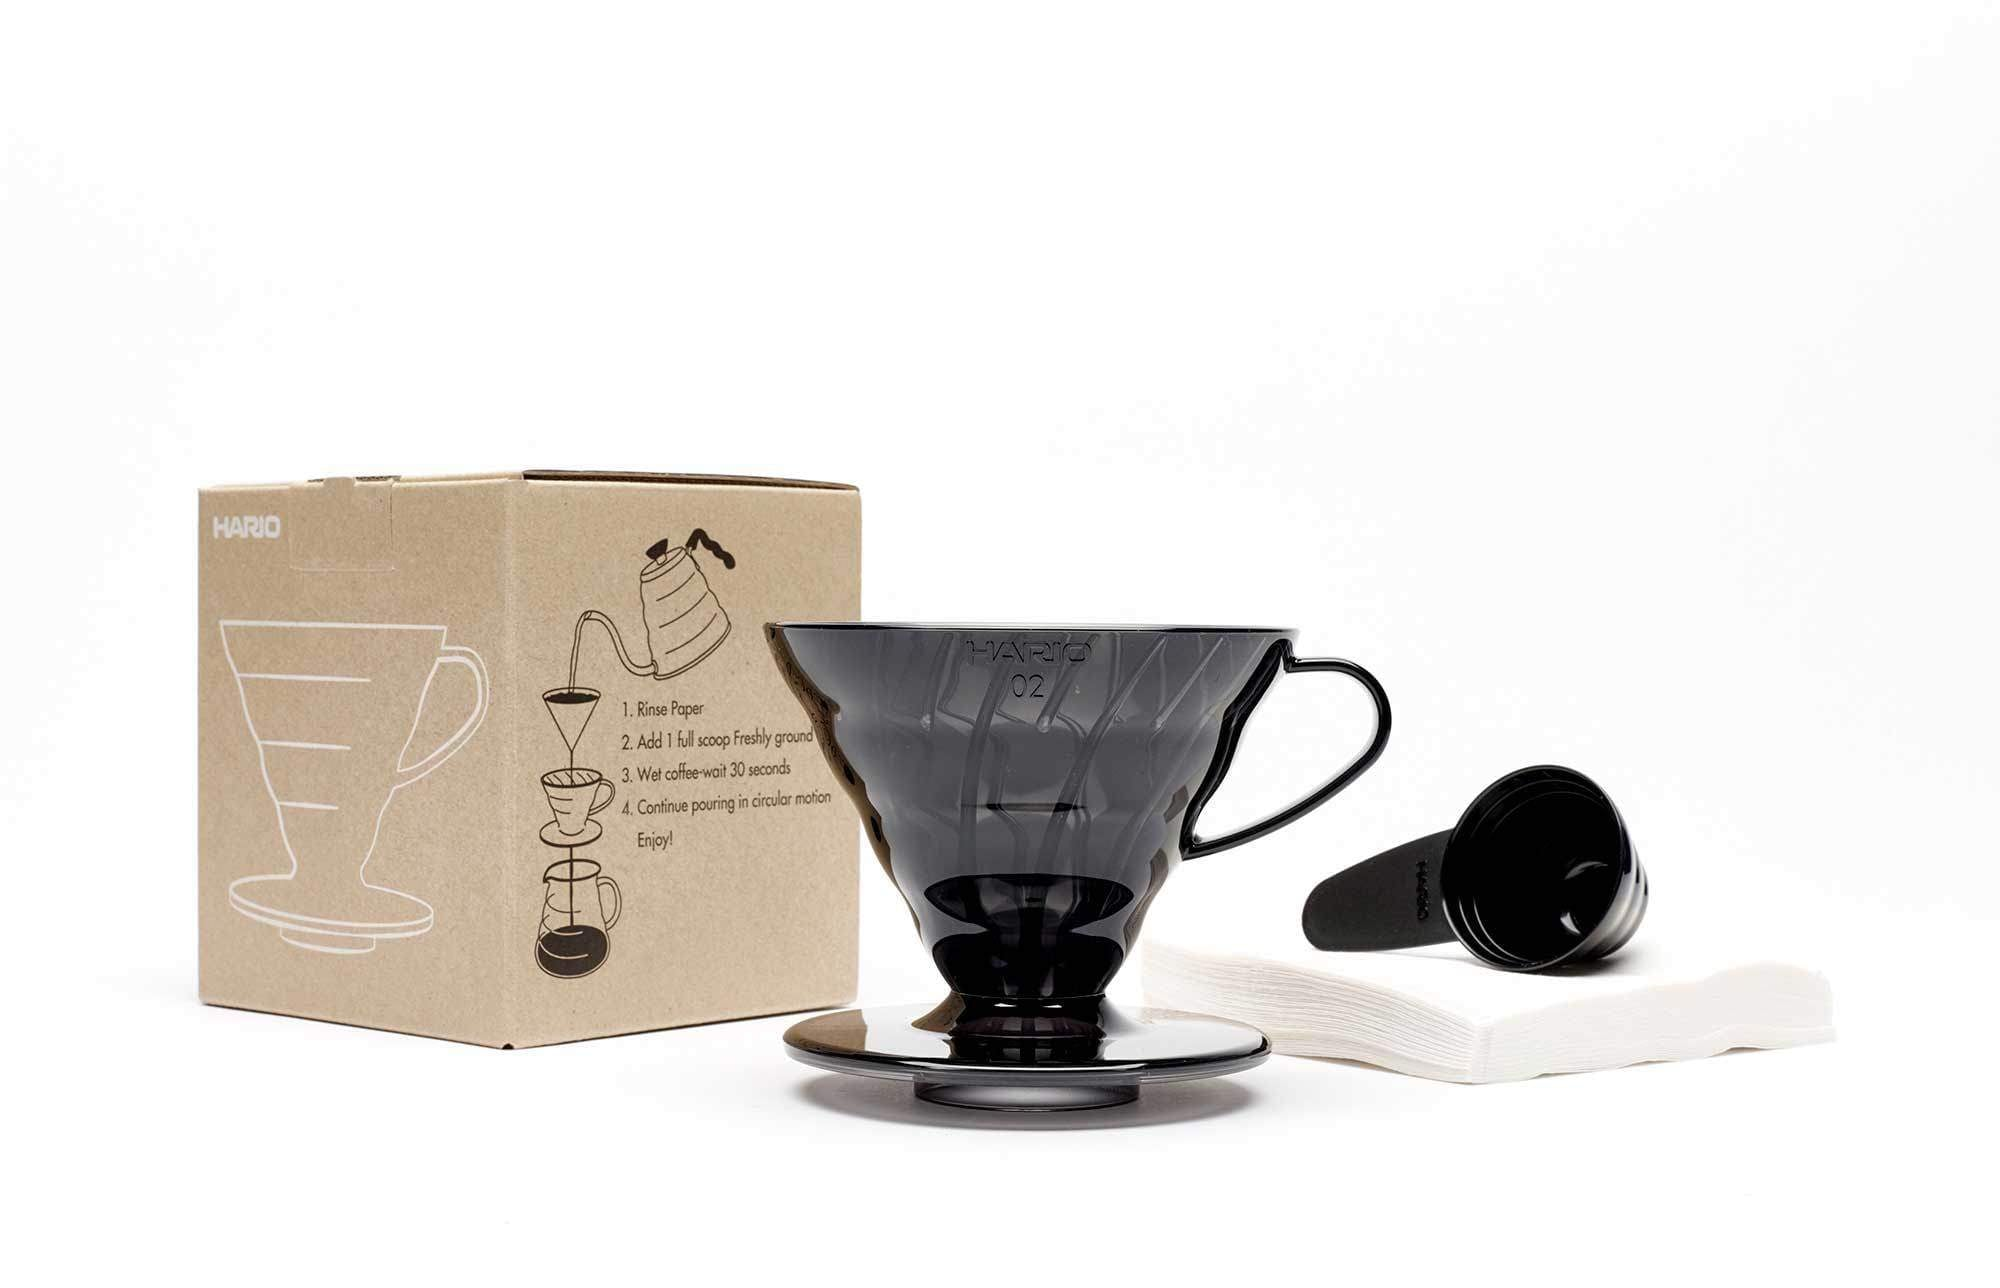 Hario V60 Coffee Dripper Set (Transparent Black) - Includes 40 Filter Papers